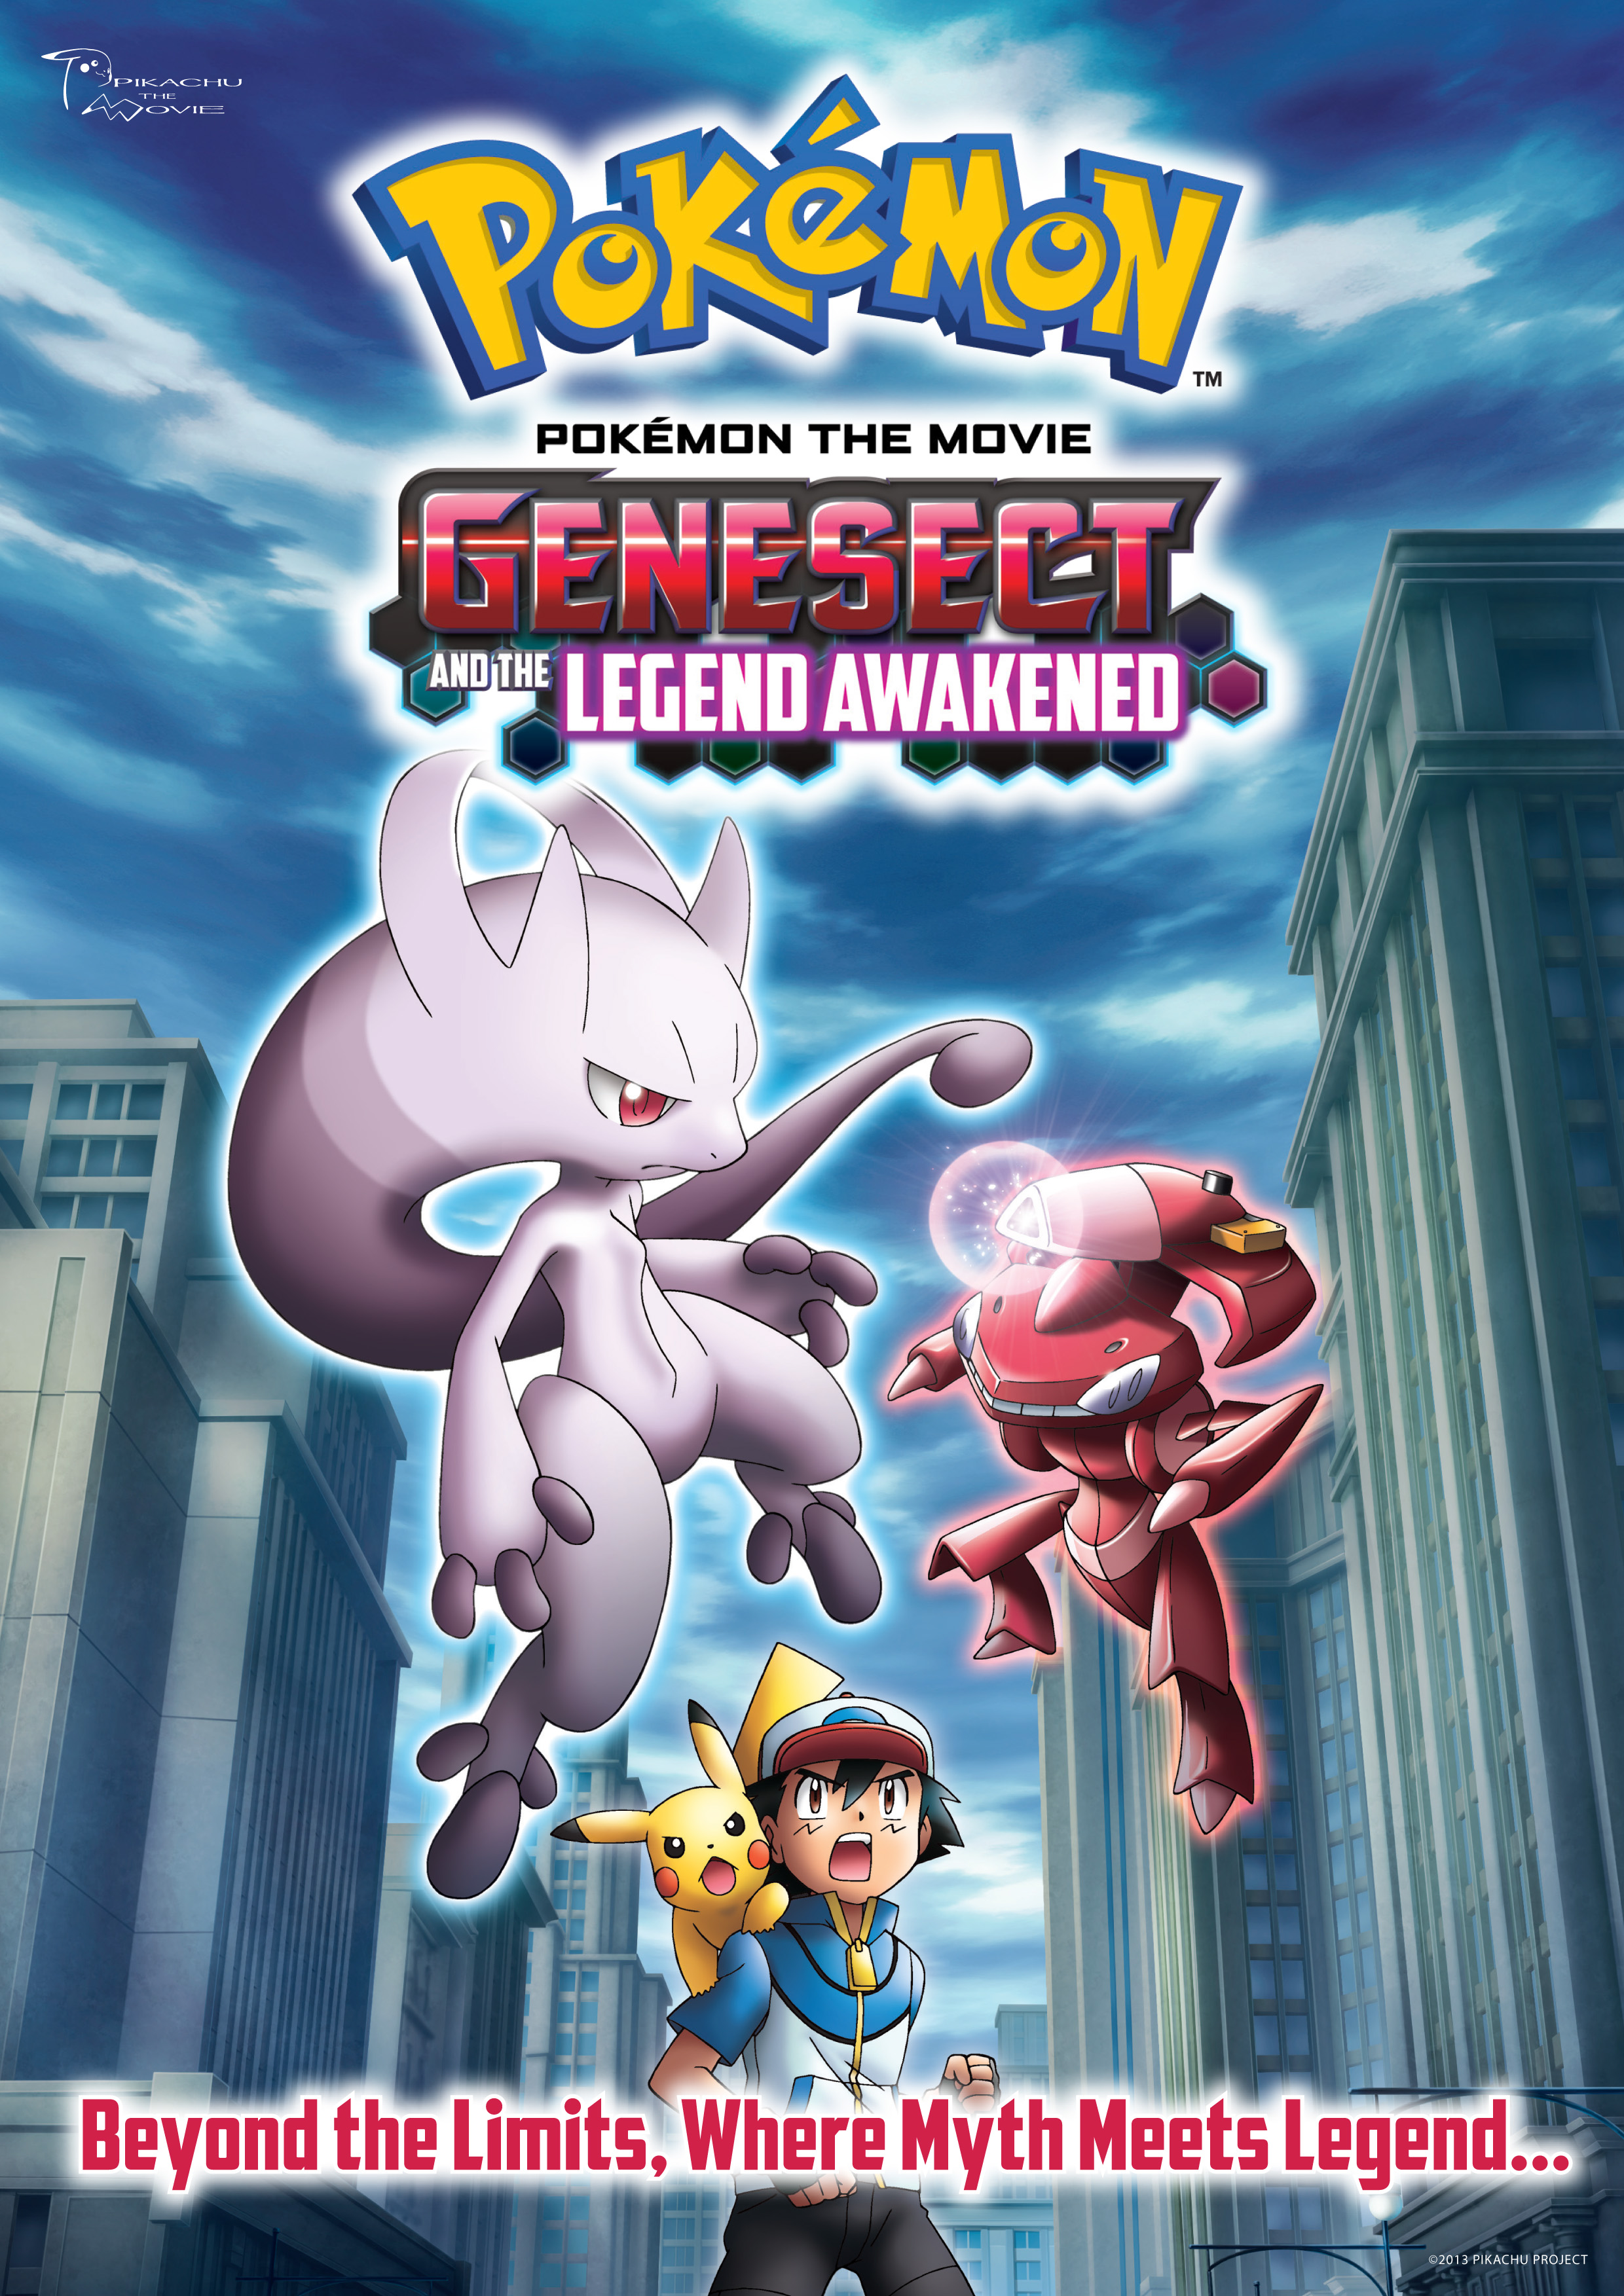 Ms016 Pokemon The Movie Genesect And The Legend Awakened